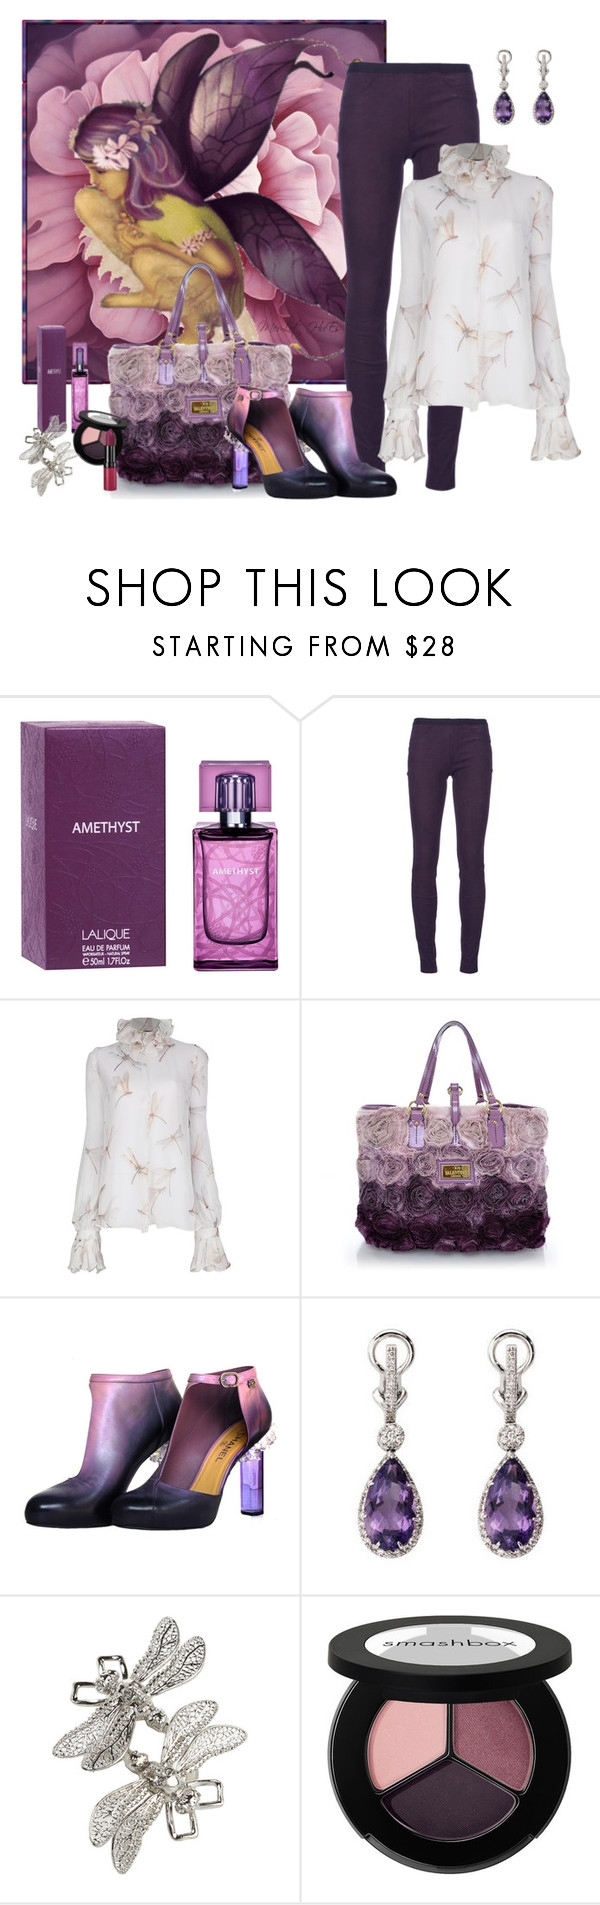 """Fey"" by merlothues ❤ liked on Polyvore featuring Lalique, Helmut Lang, Alexander McQueen, Valentino, Chanel, Aspinal of London, Smashbox, Rimmel, Leather and AlexanderMcQueen"